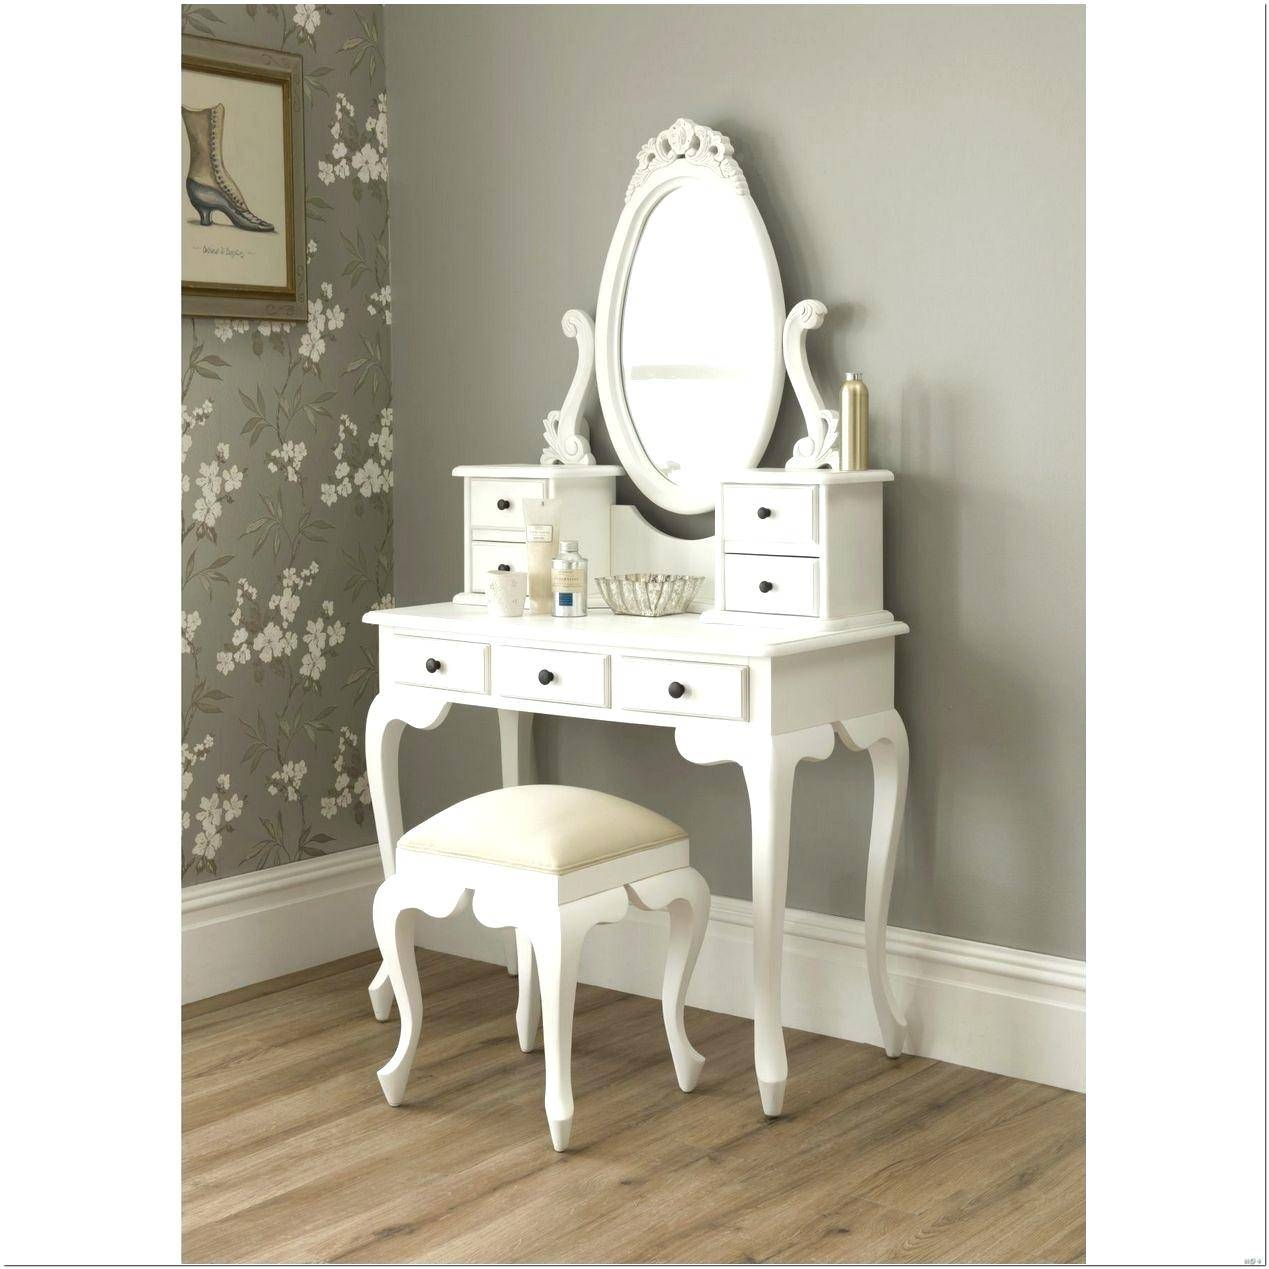 Venetian Dressing Table Mirror – Shopwiz within Venetian Table Mirrors (Image 19 of 25)